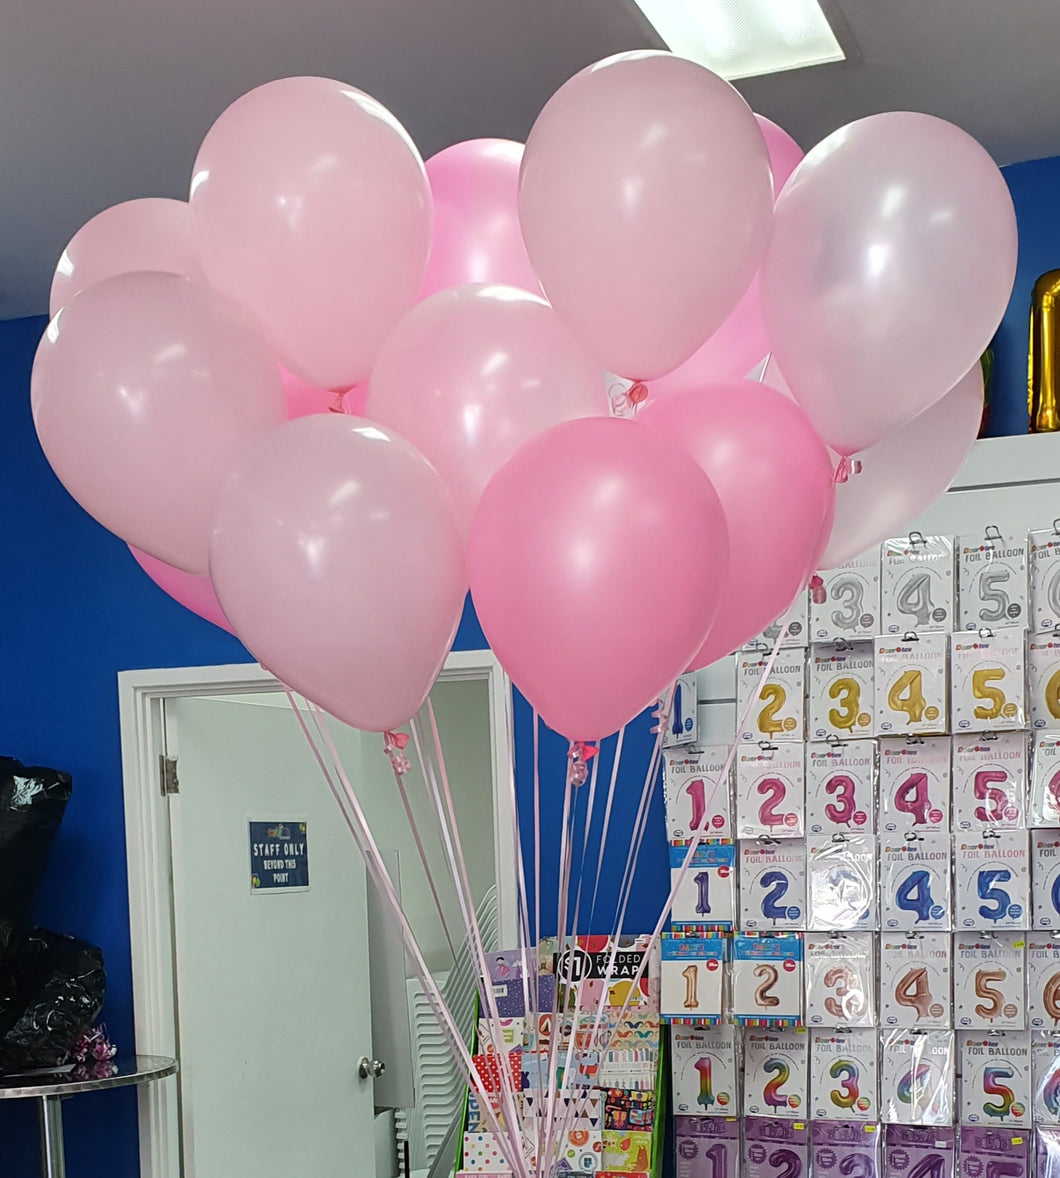 Loose Helium Filled Latex Balloons